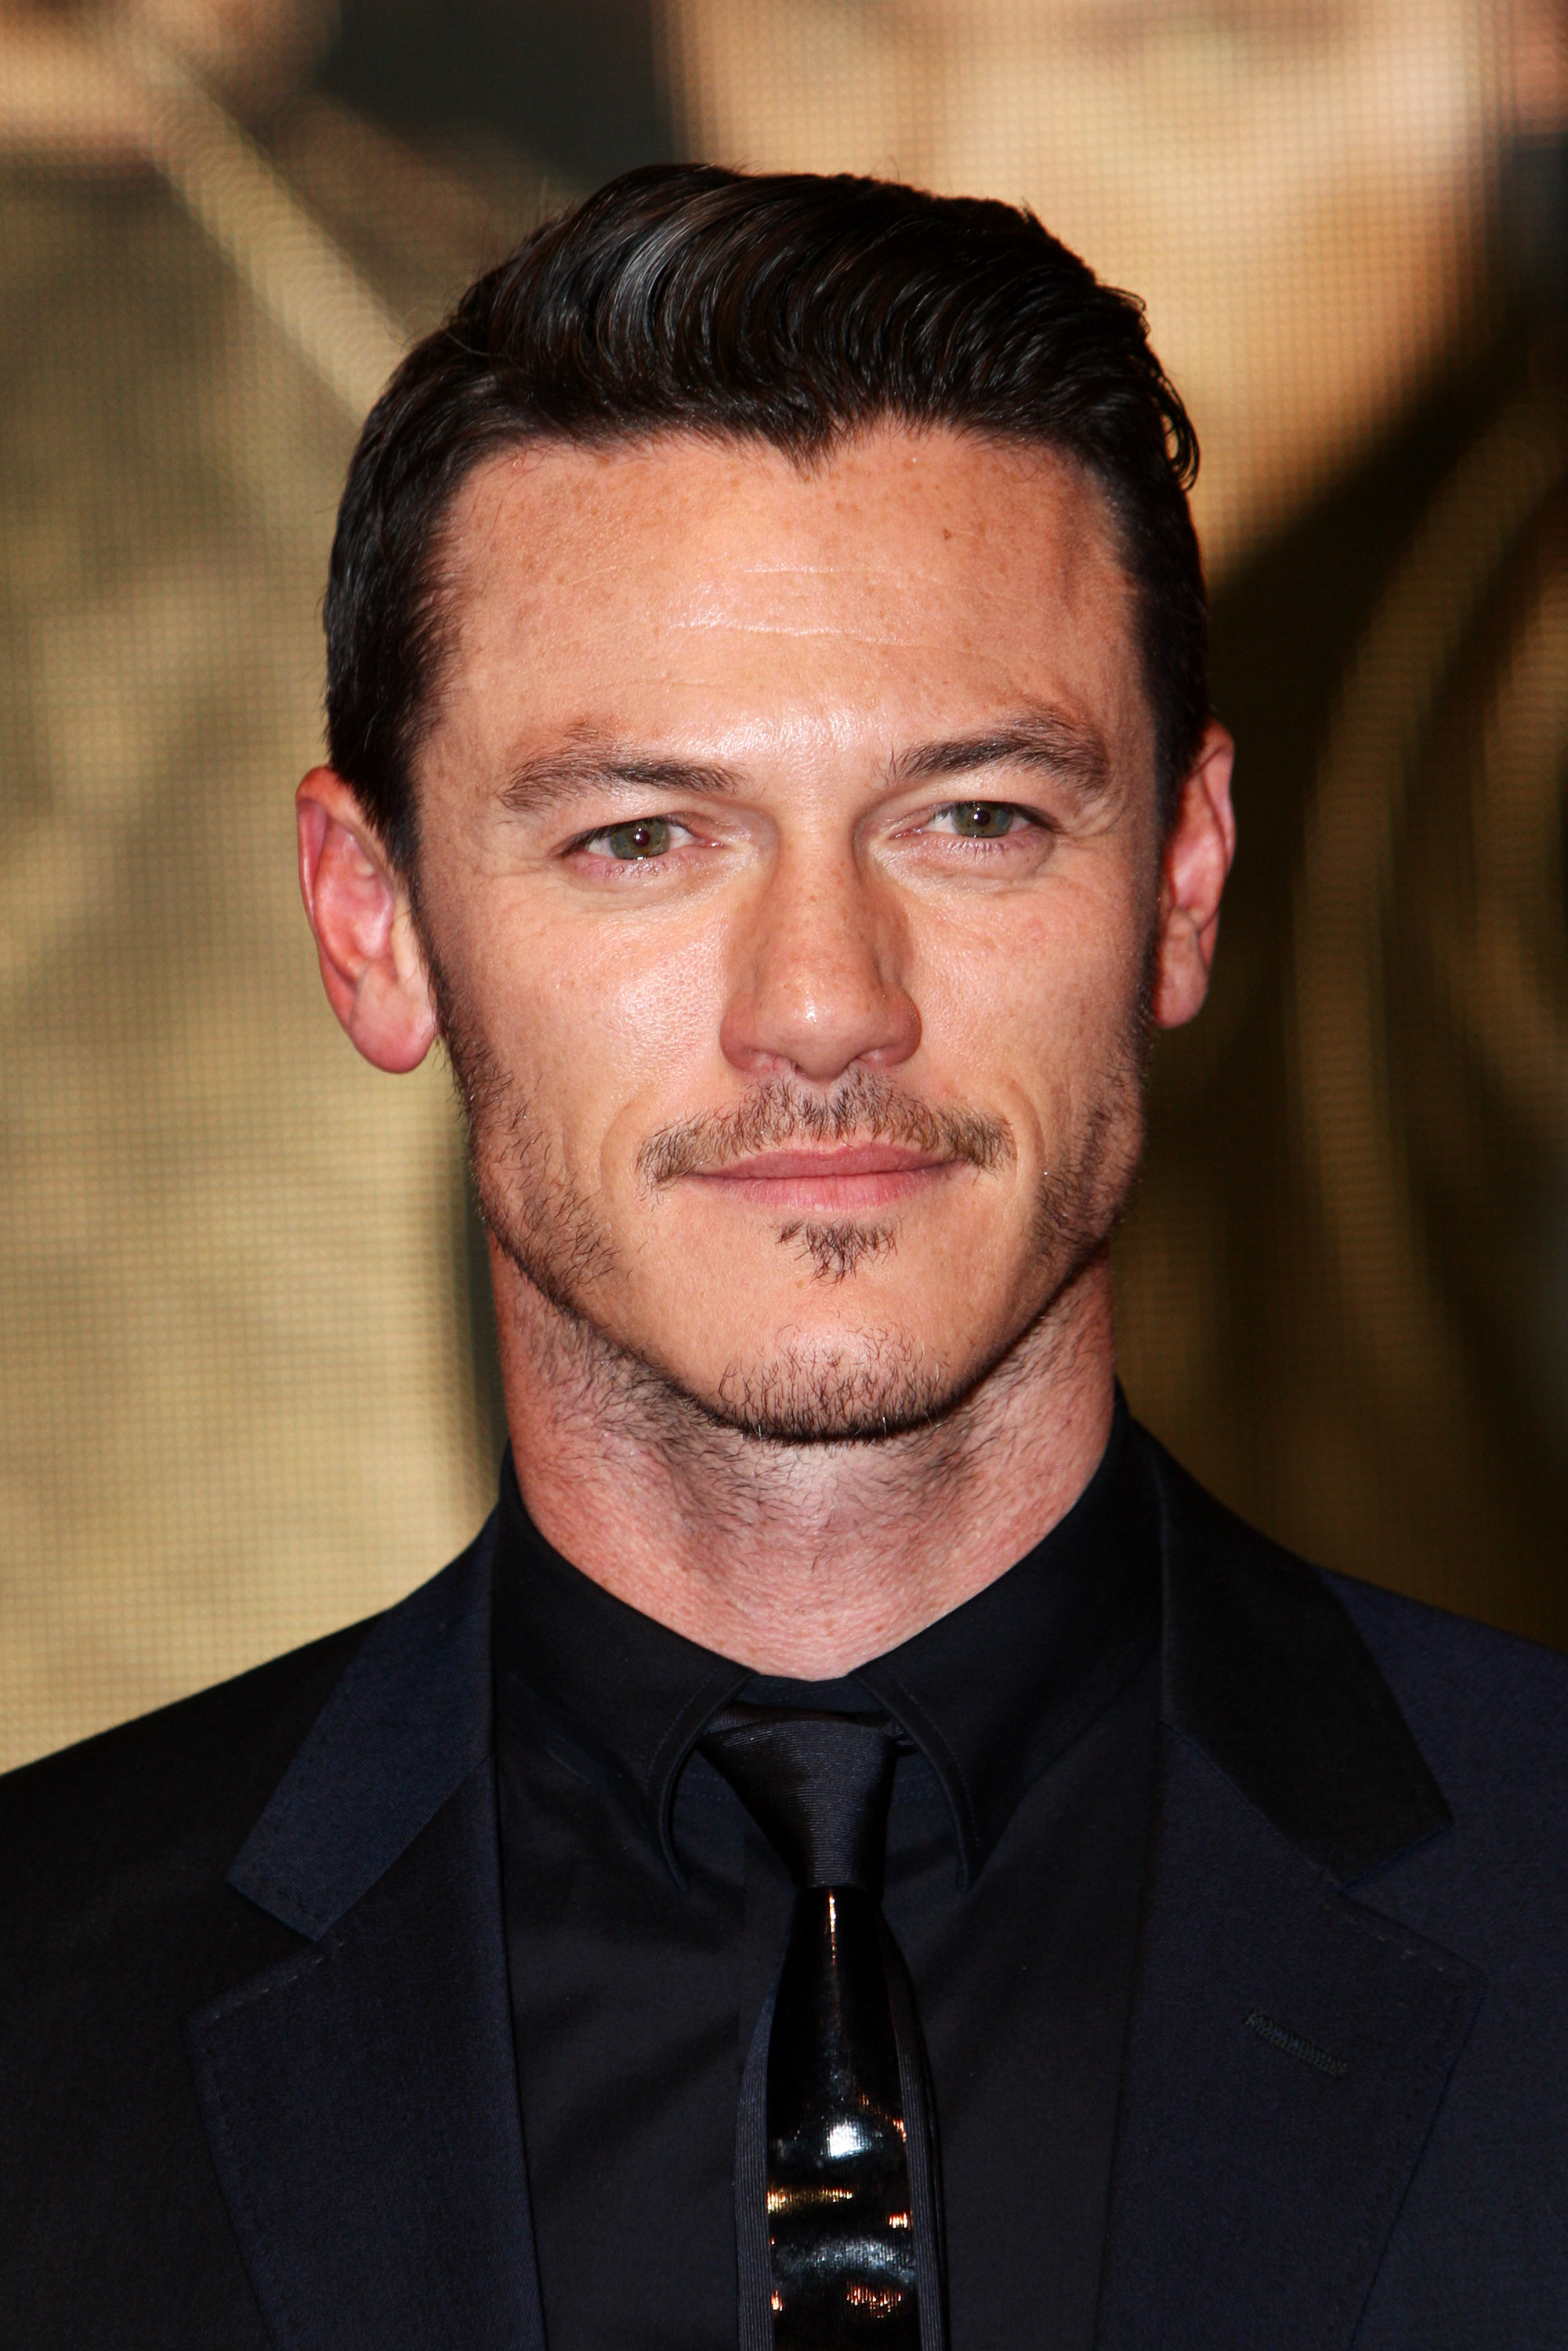 Luke Evans earned a  million dollar salary, leaving the net worth at 6 million in 2017